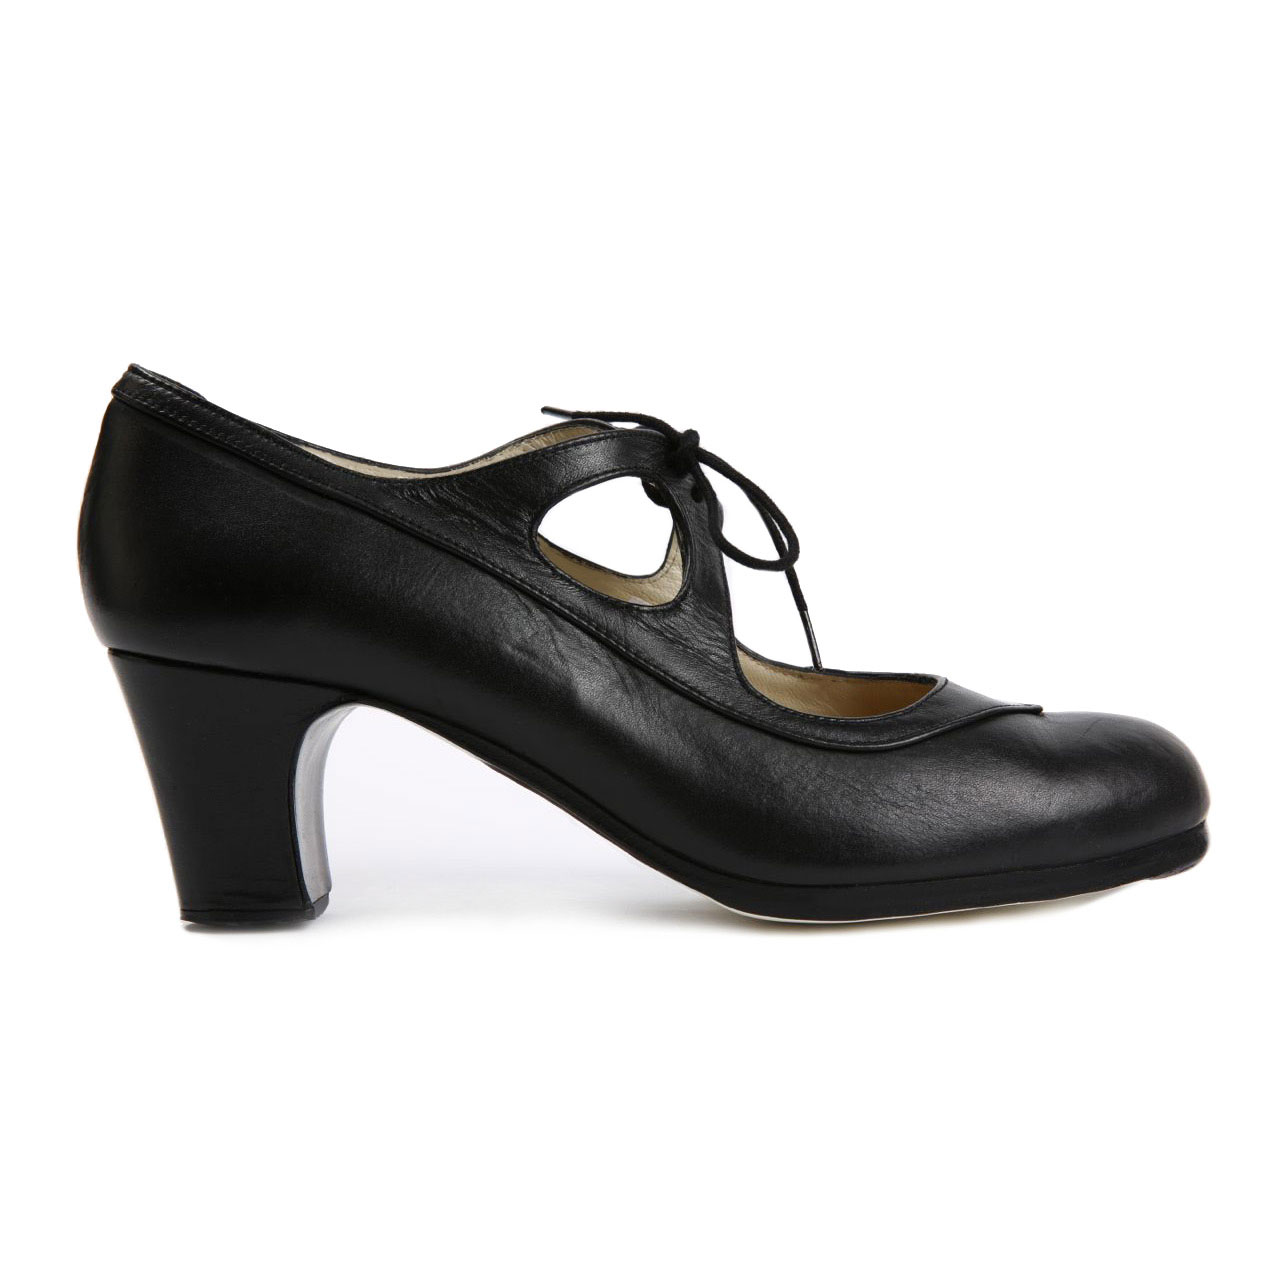 Flamenco dance Shoe Candor Black Leather